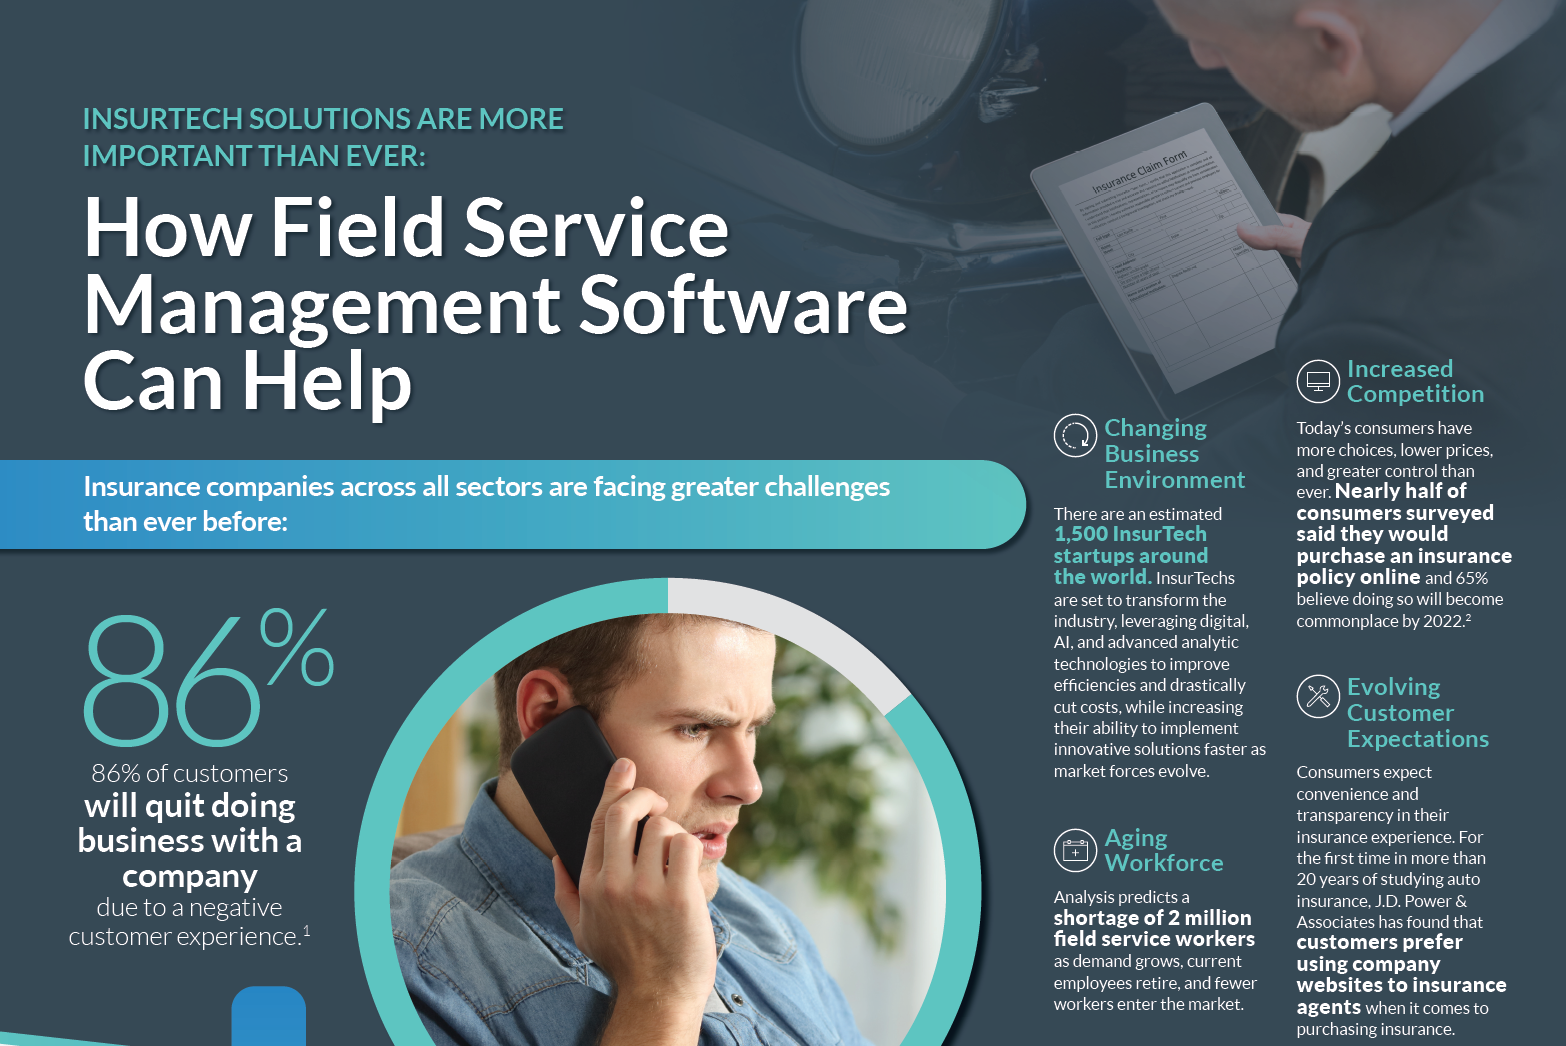 INSURTECH SOLUTIONS ARE MORE IMPORTANT THAN EVER: How Field Service Management Software Can Help